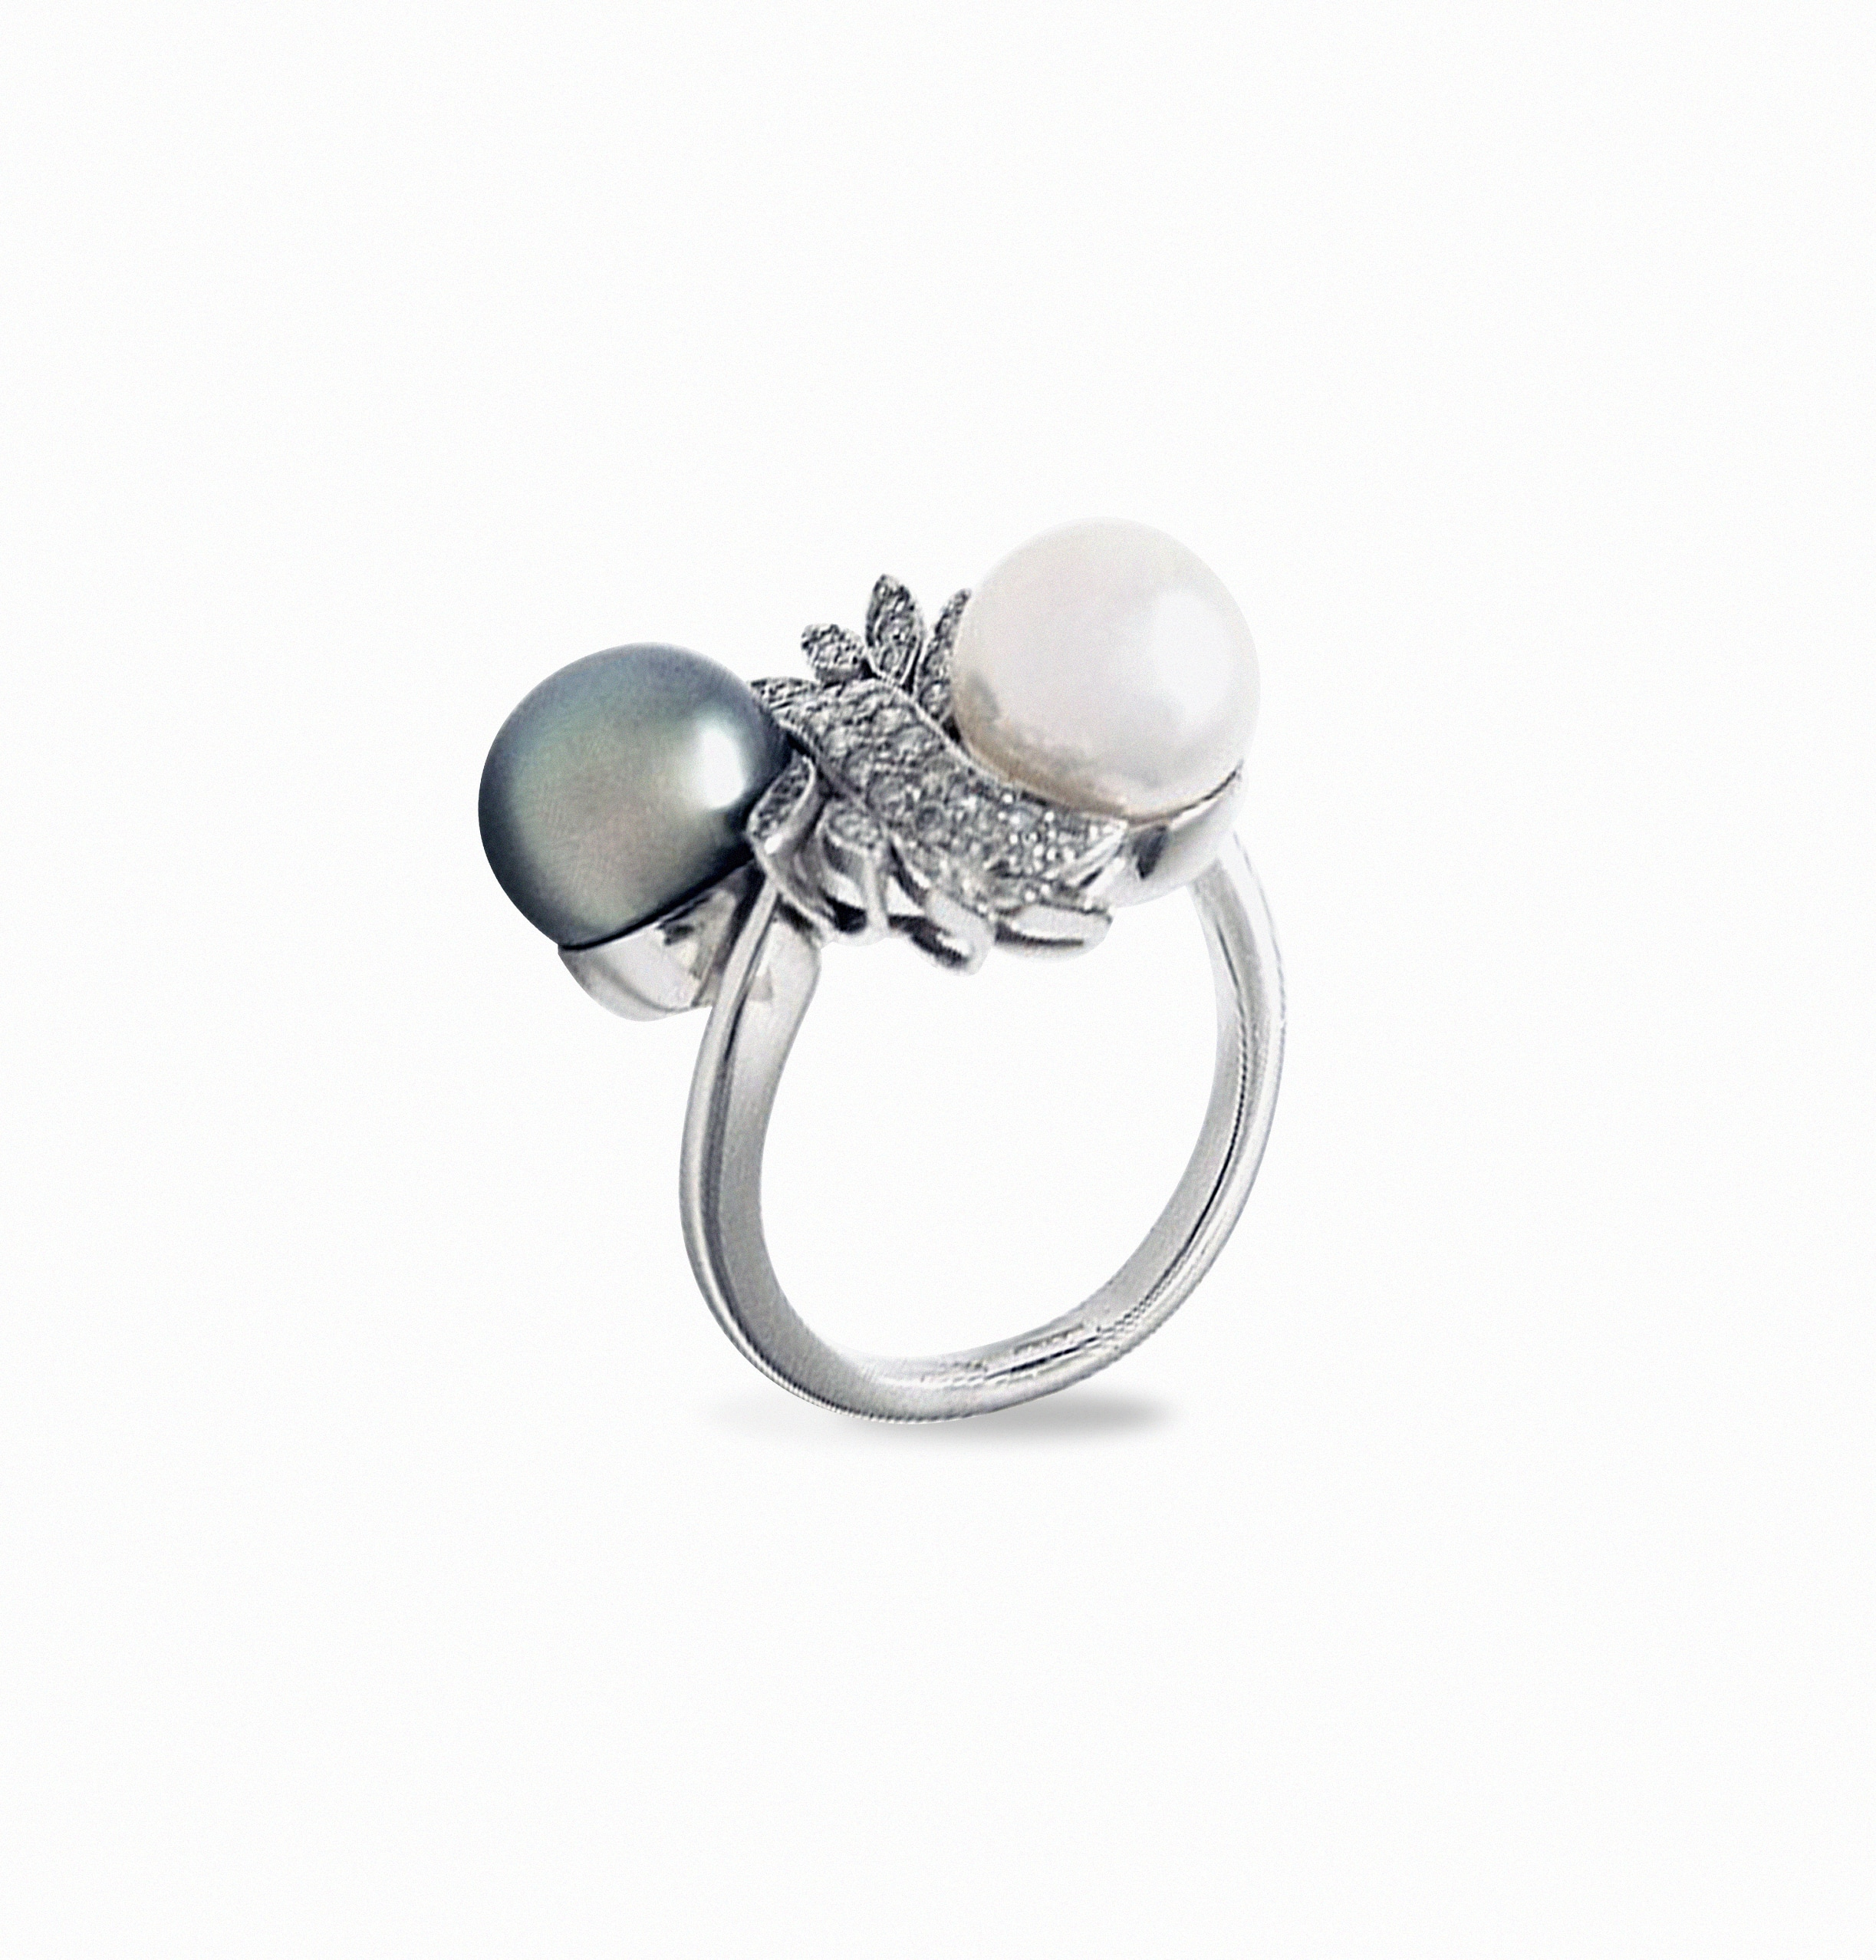 White Gold ring with Akoya and Tahiti pearls